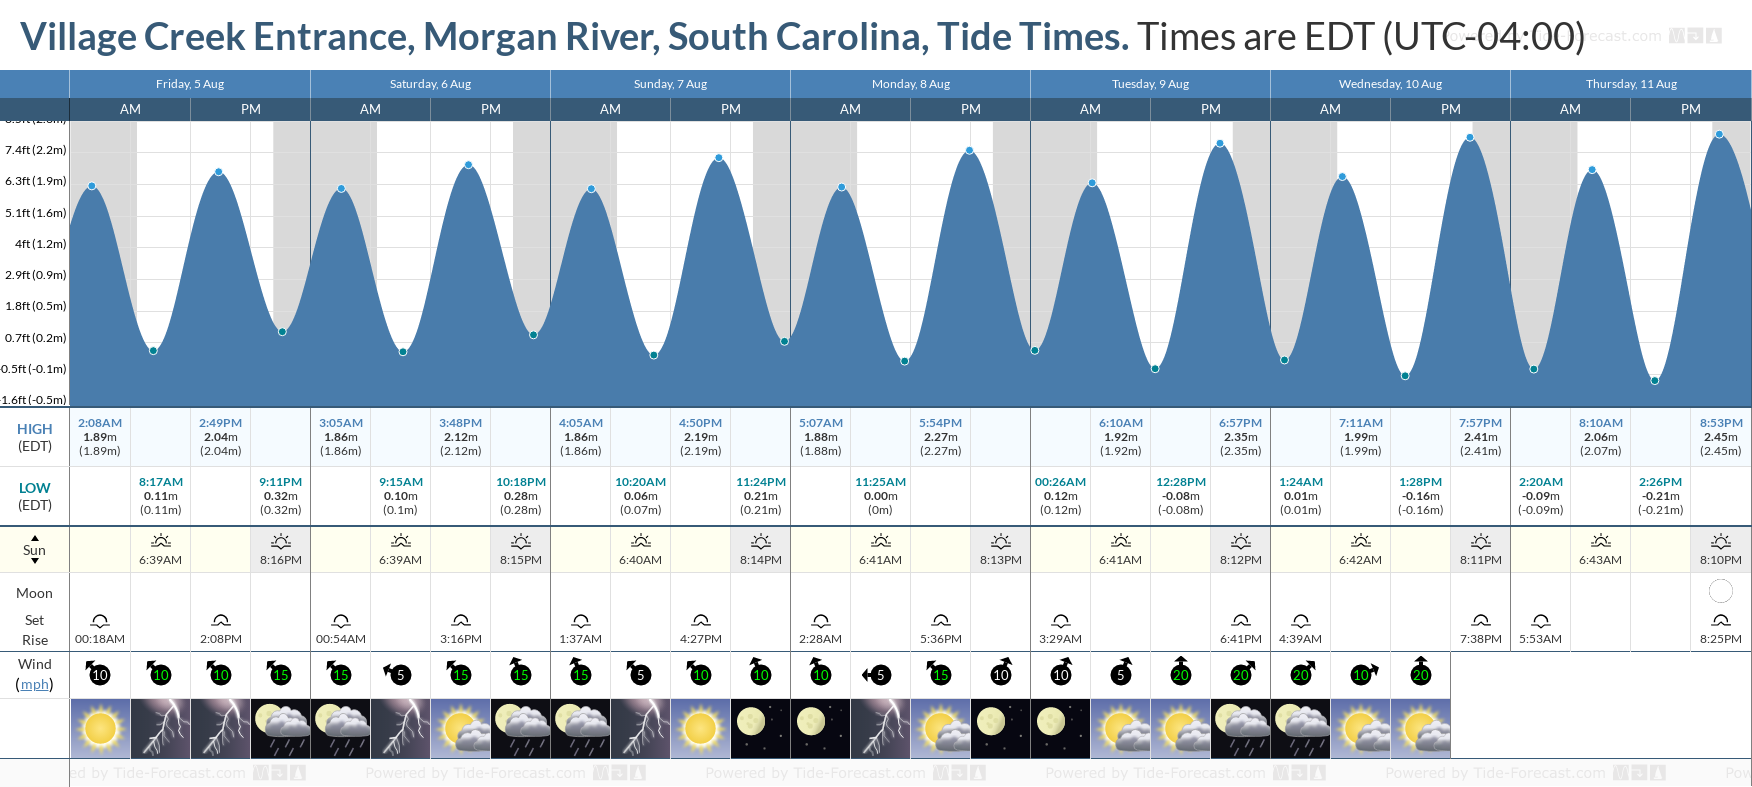 Village Creek Entrance, Morgan River, South Carolina Tide Chart including high and low tide tide times for the next 7 days